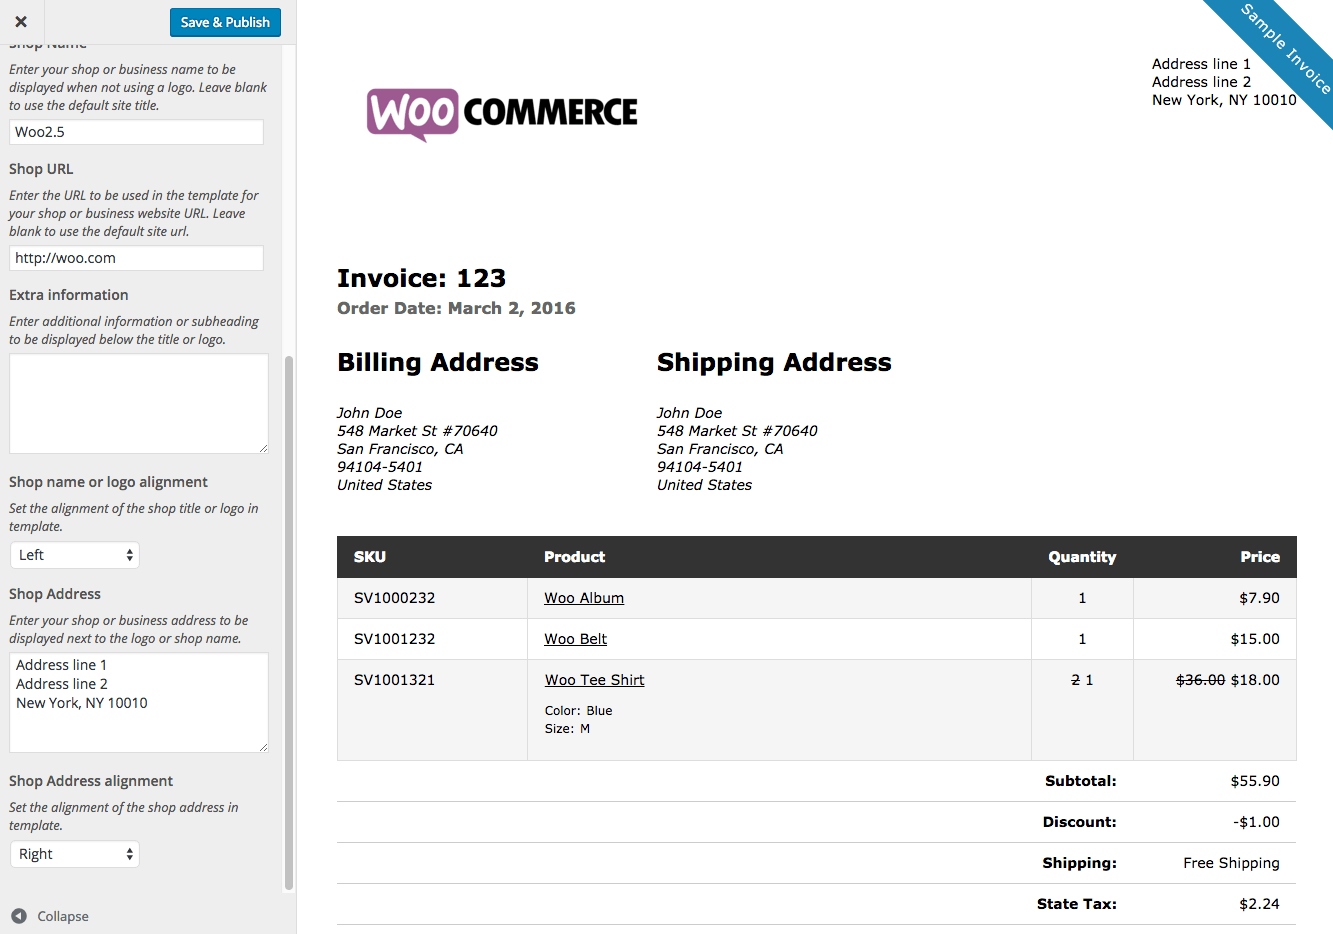 Ebitus  Pleasant Woocommerce Print Invoices Amp Packing Lists  Woocommerce Docs With Handsome Woocommerce Print Invoices  Packing Lists Customizer With Charming Customize Invoice Also Paid Invoices In Addition Free Printable Blank Invoices And Tacoma Invoice Price As Well As Chevy Silverado Invoice Price Additionally Mdx Invoice From Docswoocommercecom With Ebitus  Handsome Woocommerce Print Invoices Amp Packing Lists  Woocommerce Docs With Charming Woocommerce Print Invoices  Packing Lists Customizer And Pleasant Customize Invoice Also Paid Invoices In Addition Free Printable Blank Invoices From Docswoocommercecom